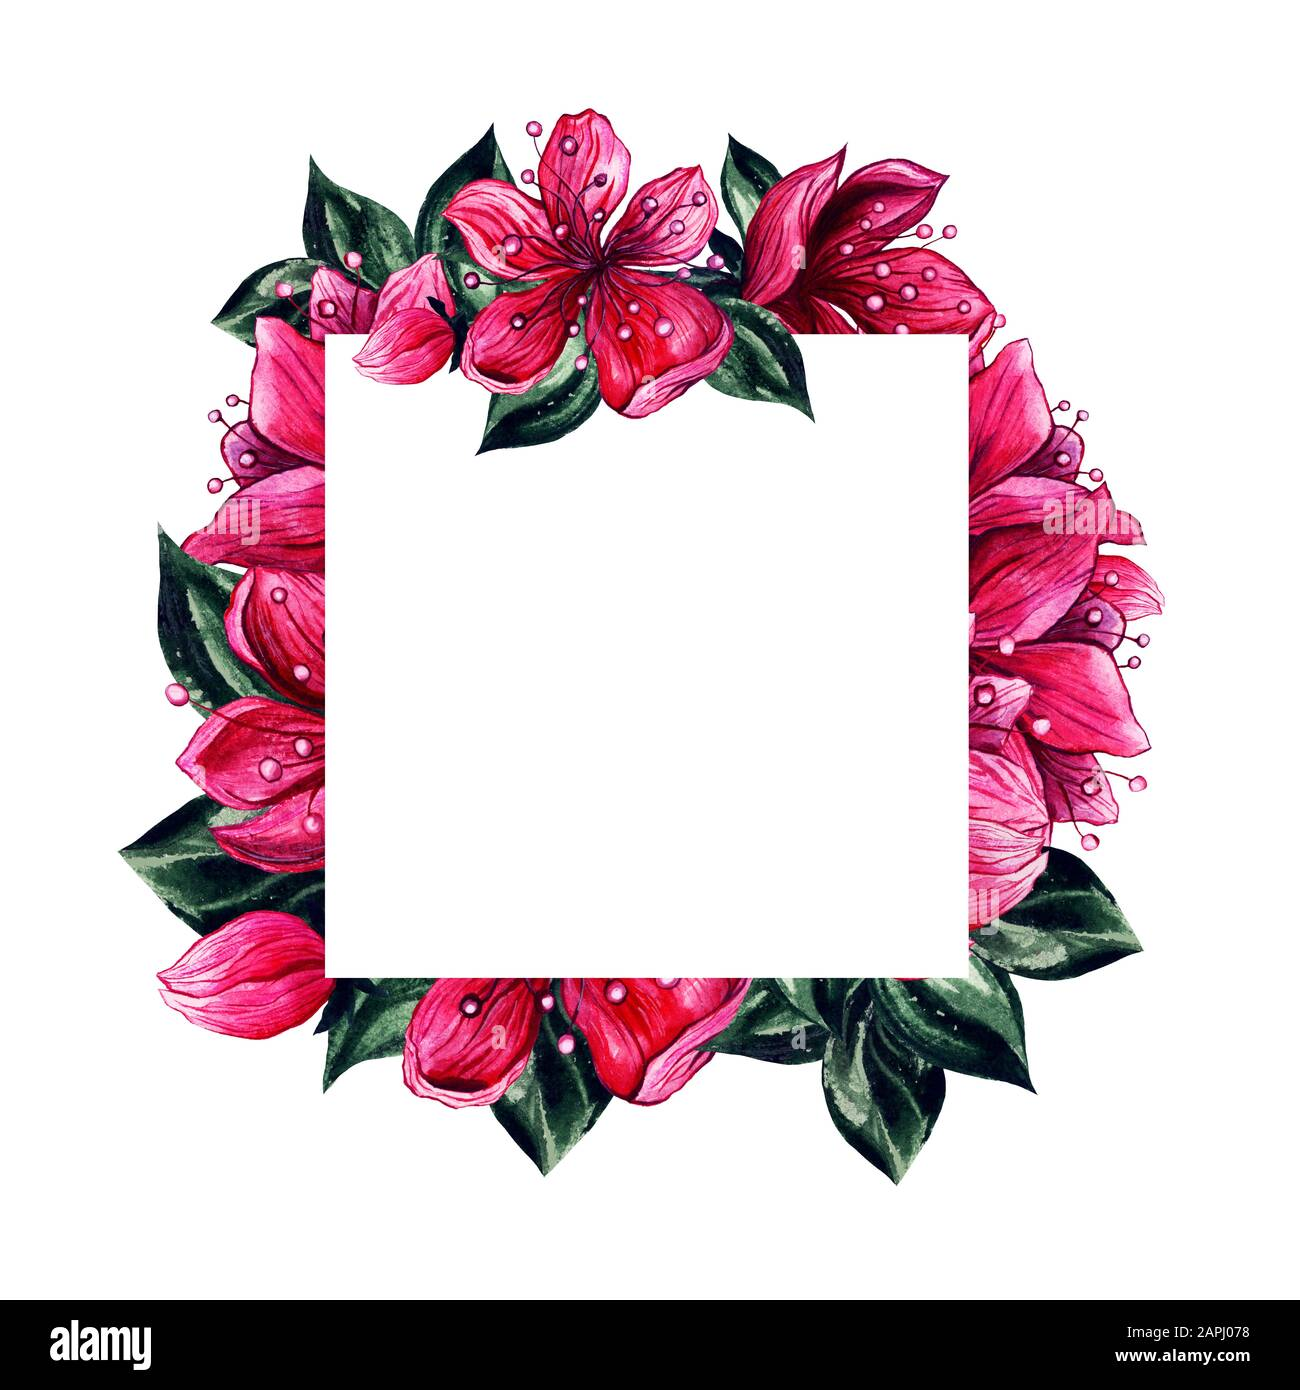 https www alamy com flower frame wedding invitation card background design template watercolor floral decoration frame of japanese plum blossom flower petals vintage graphic for save the date and wedding greeting image340914764 html